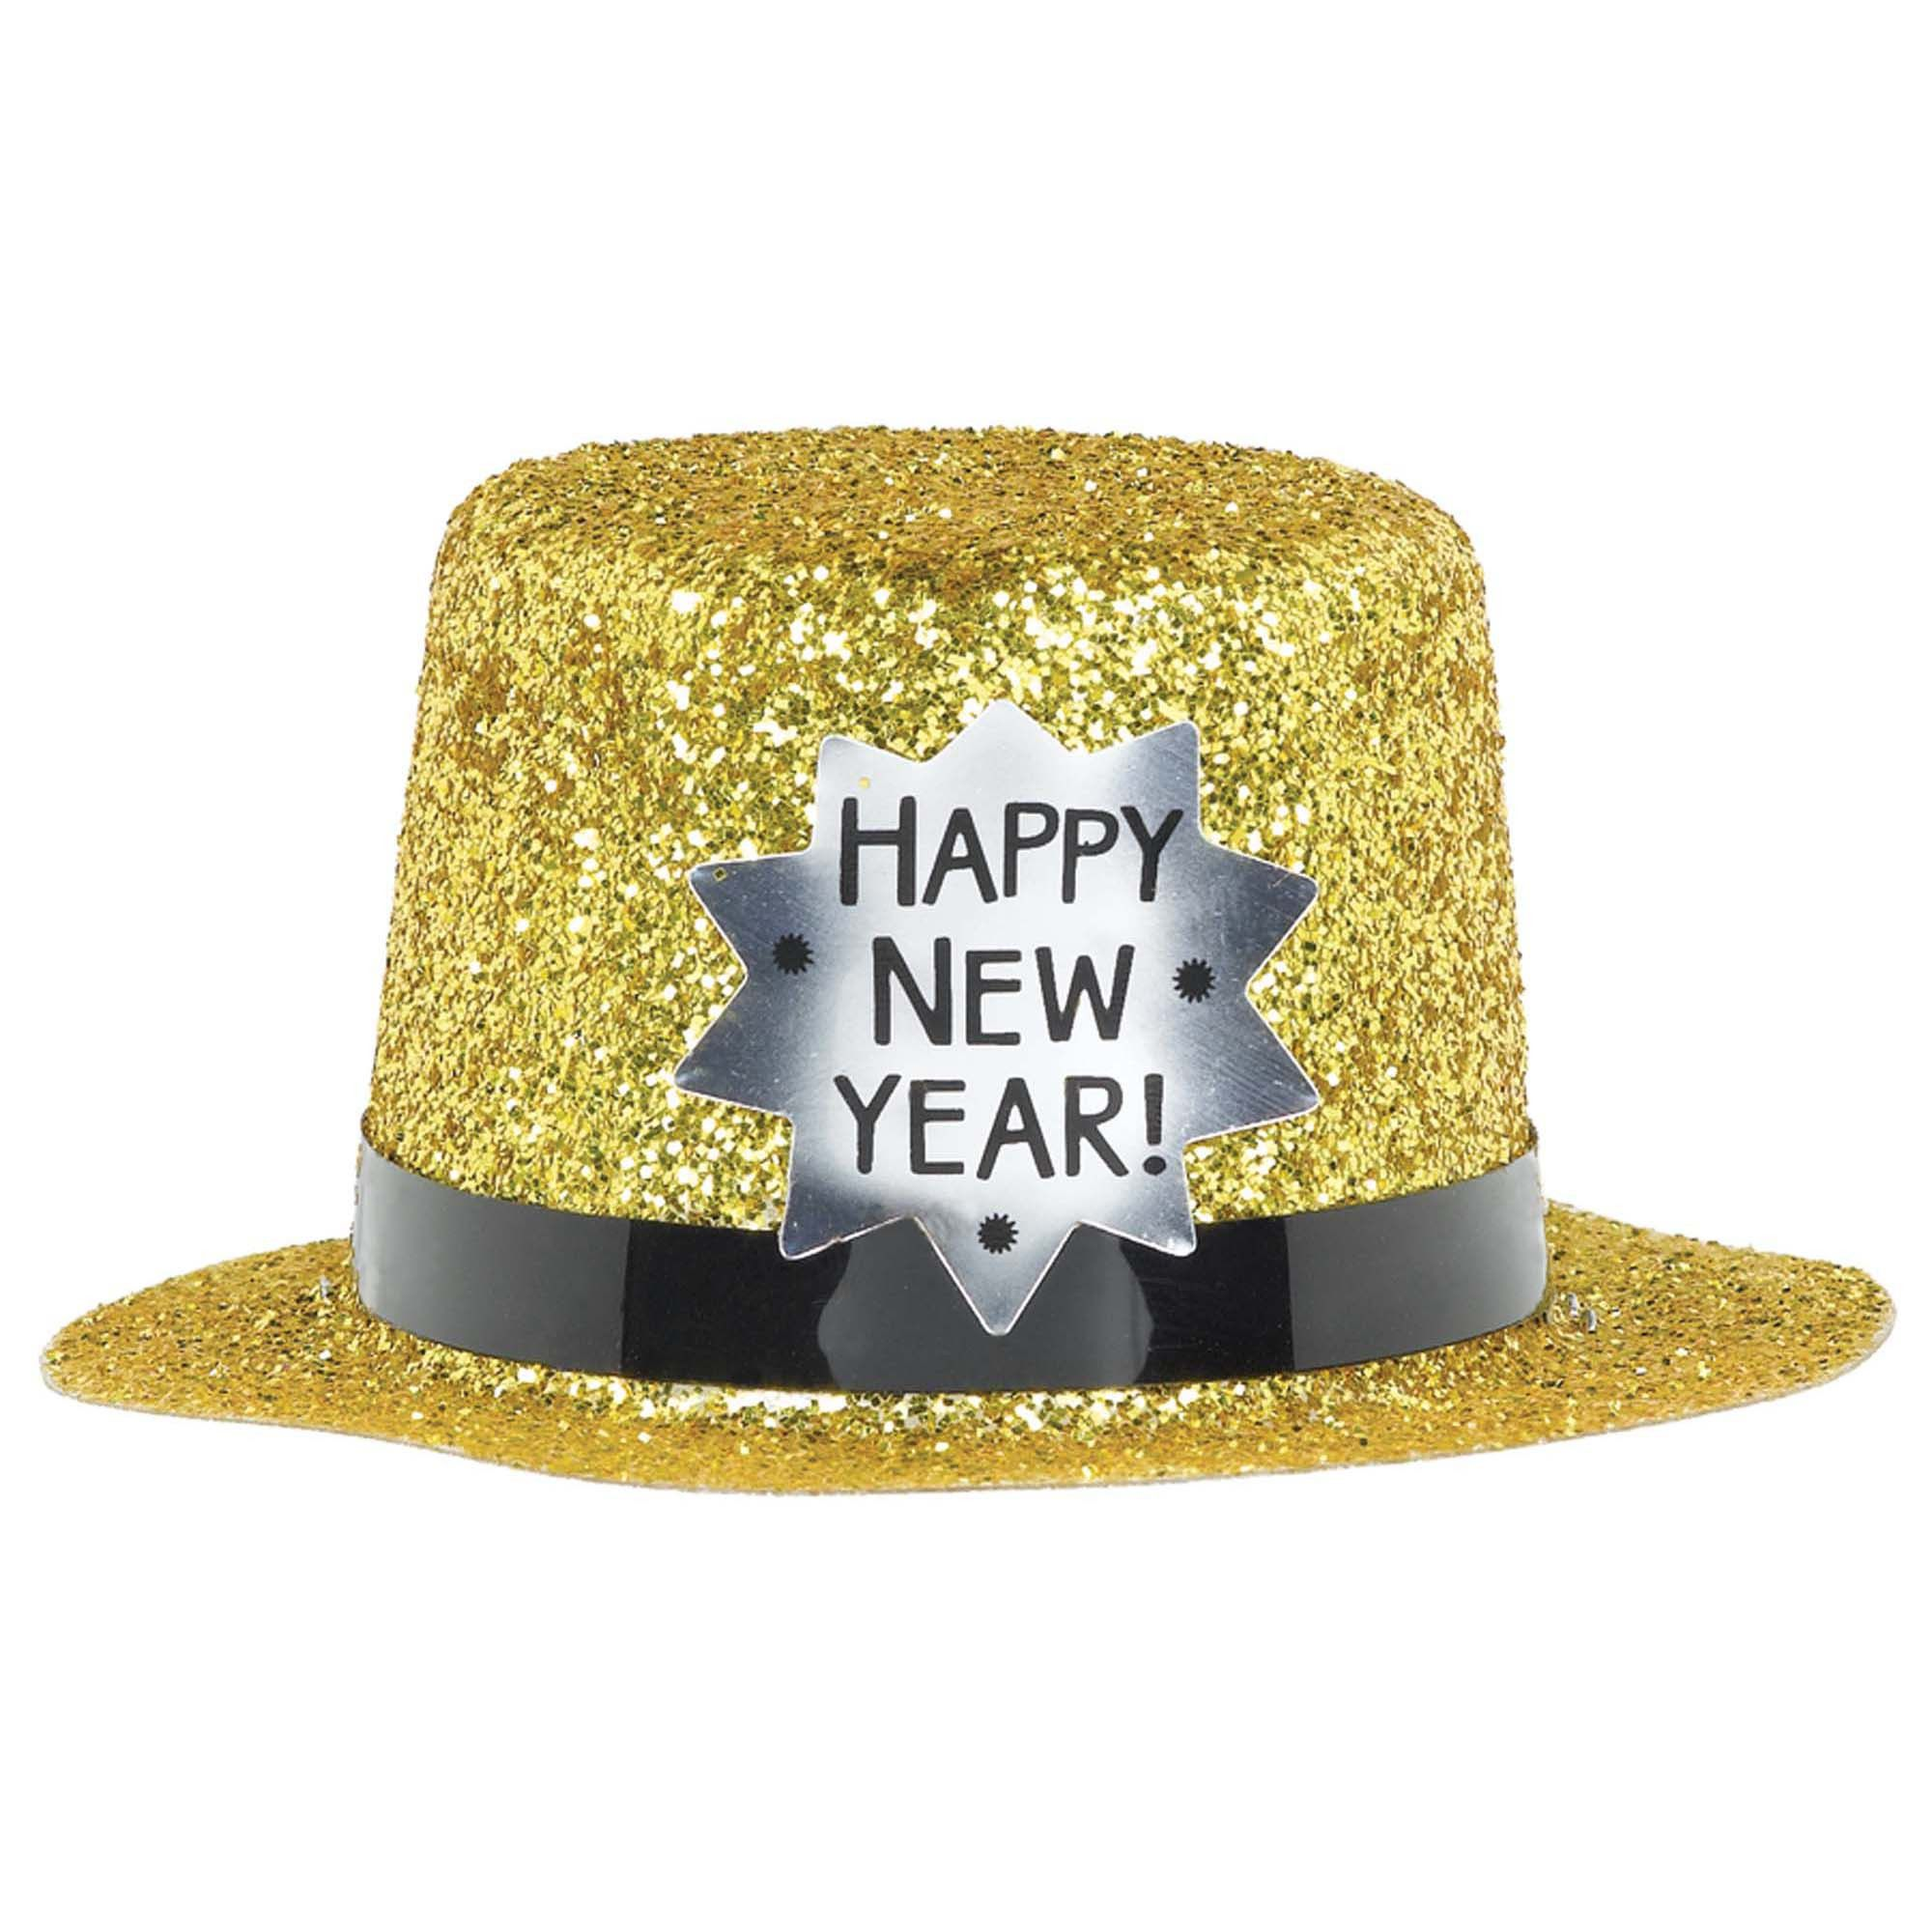 HNY Mini Top Hat Gold